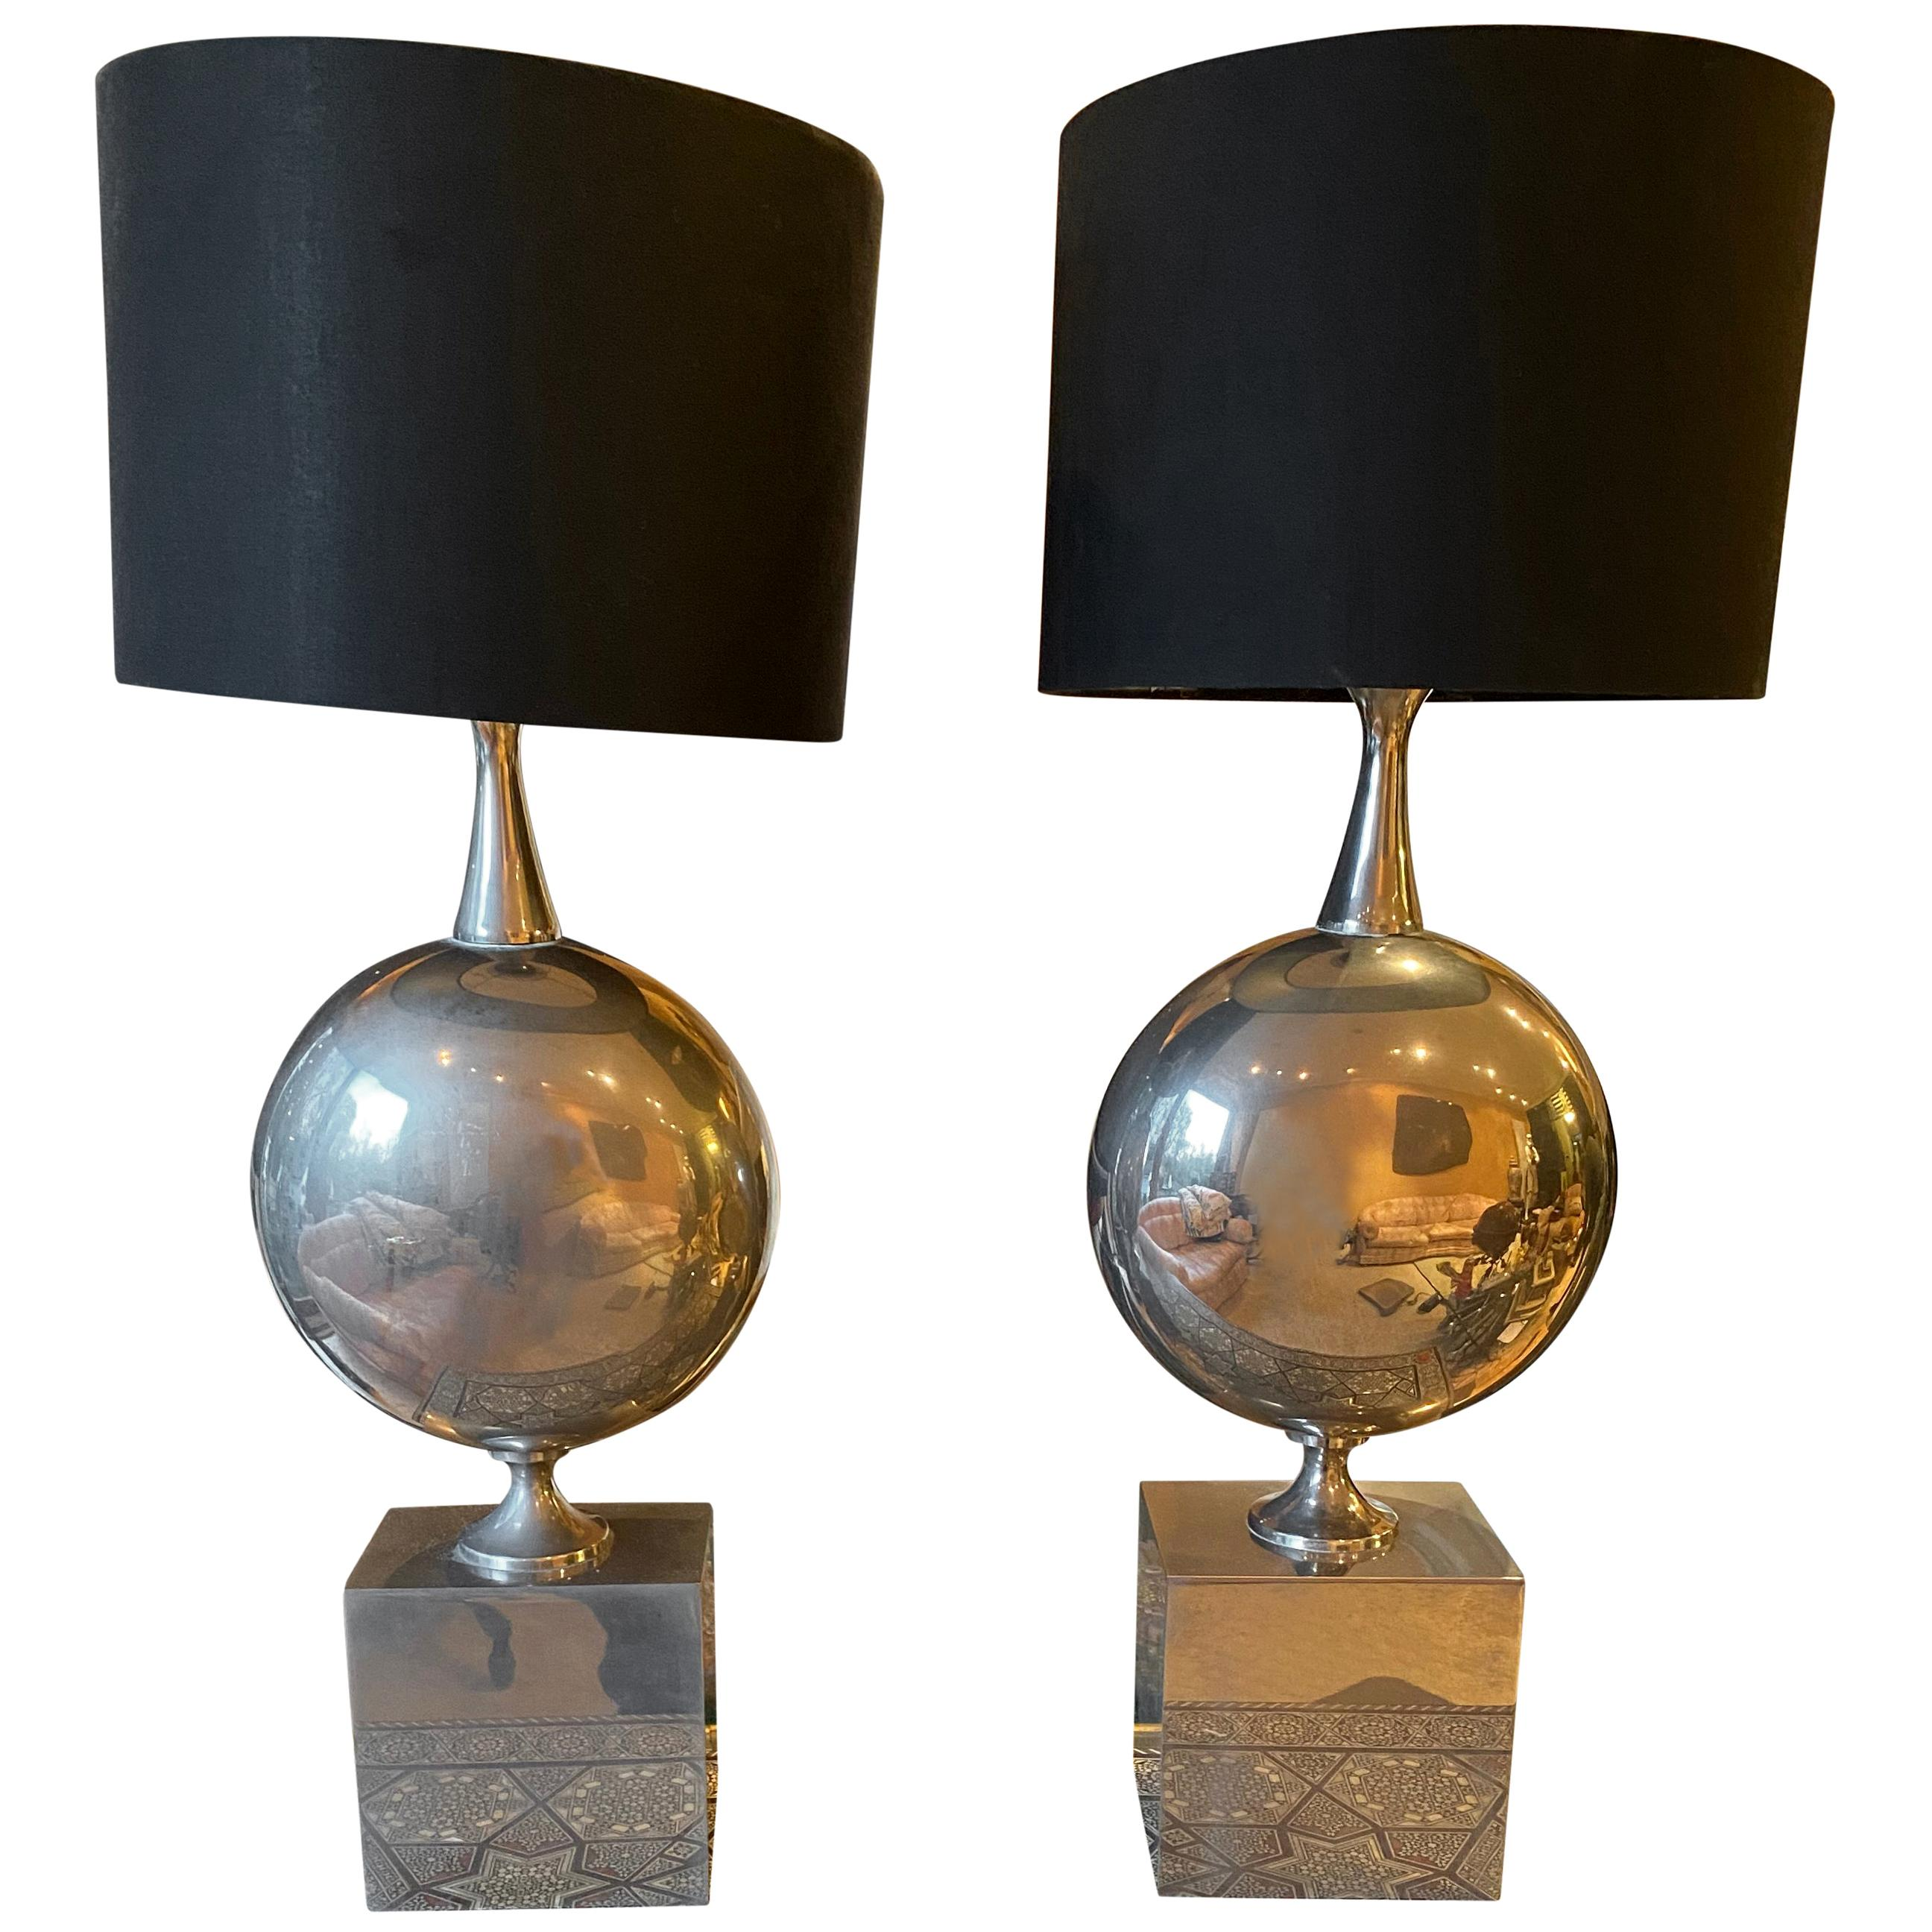 Maison Barbier Pair of Chromed Steel Table Lamps, 1970s